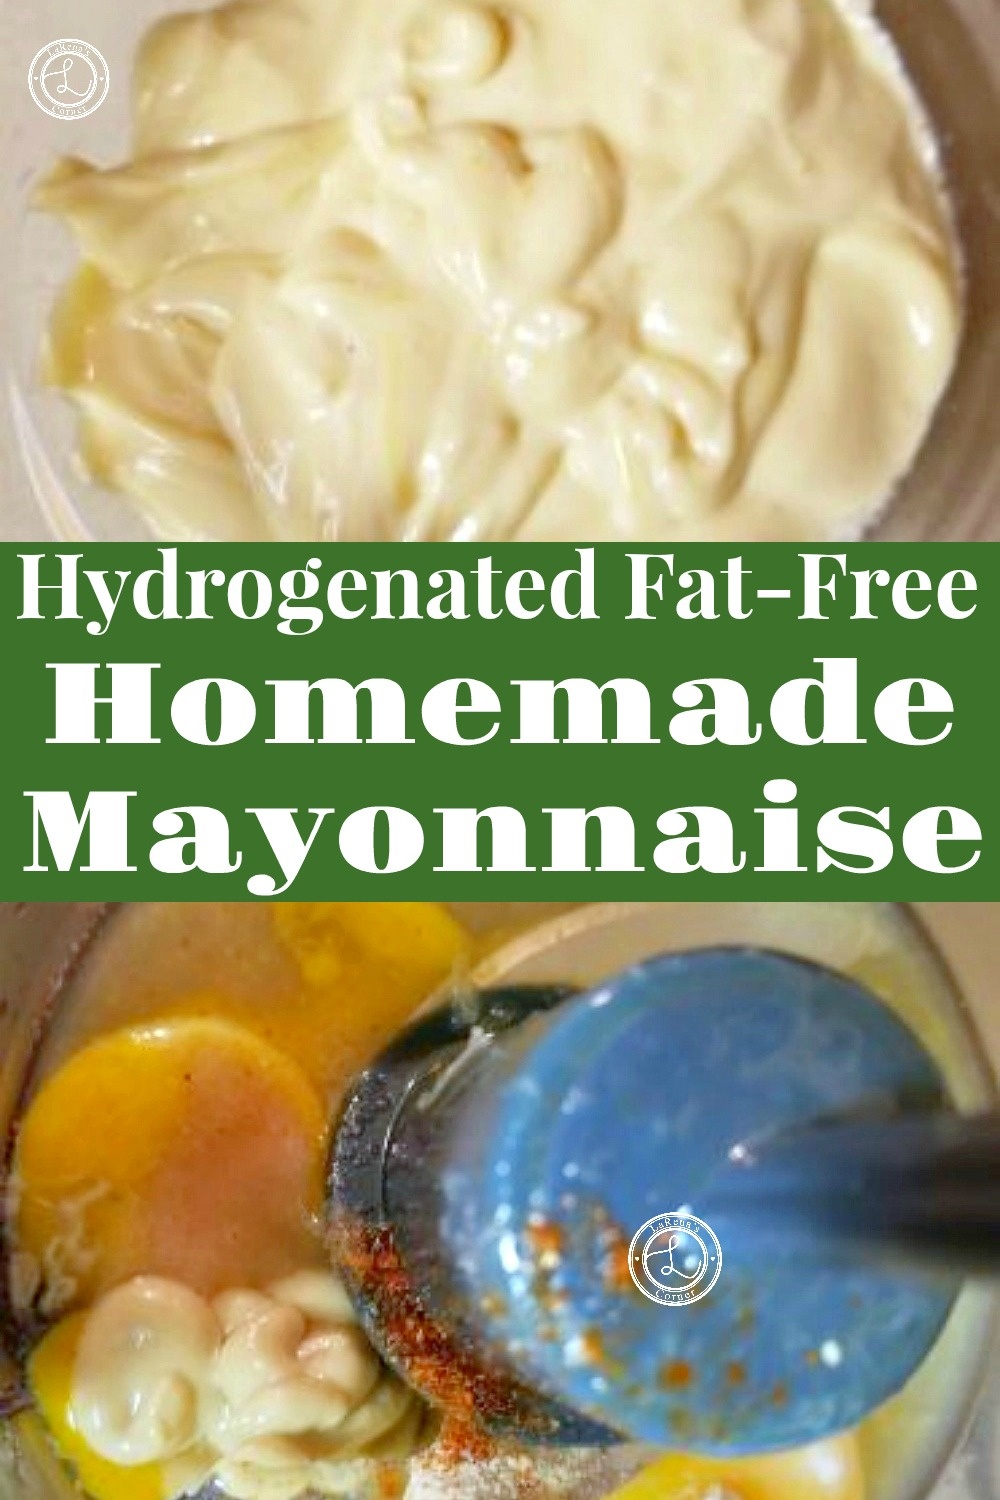 Two pictures of homemade mayonnaise. One with ingredients in a food processor and one after it is made.